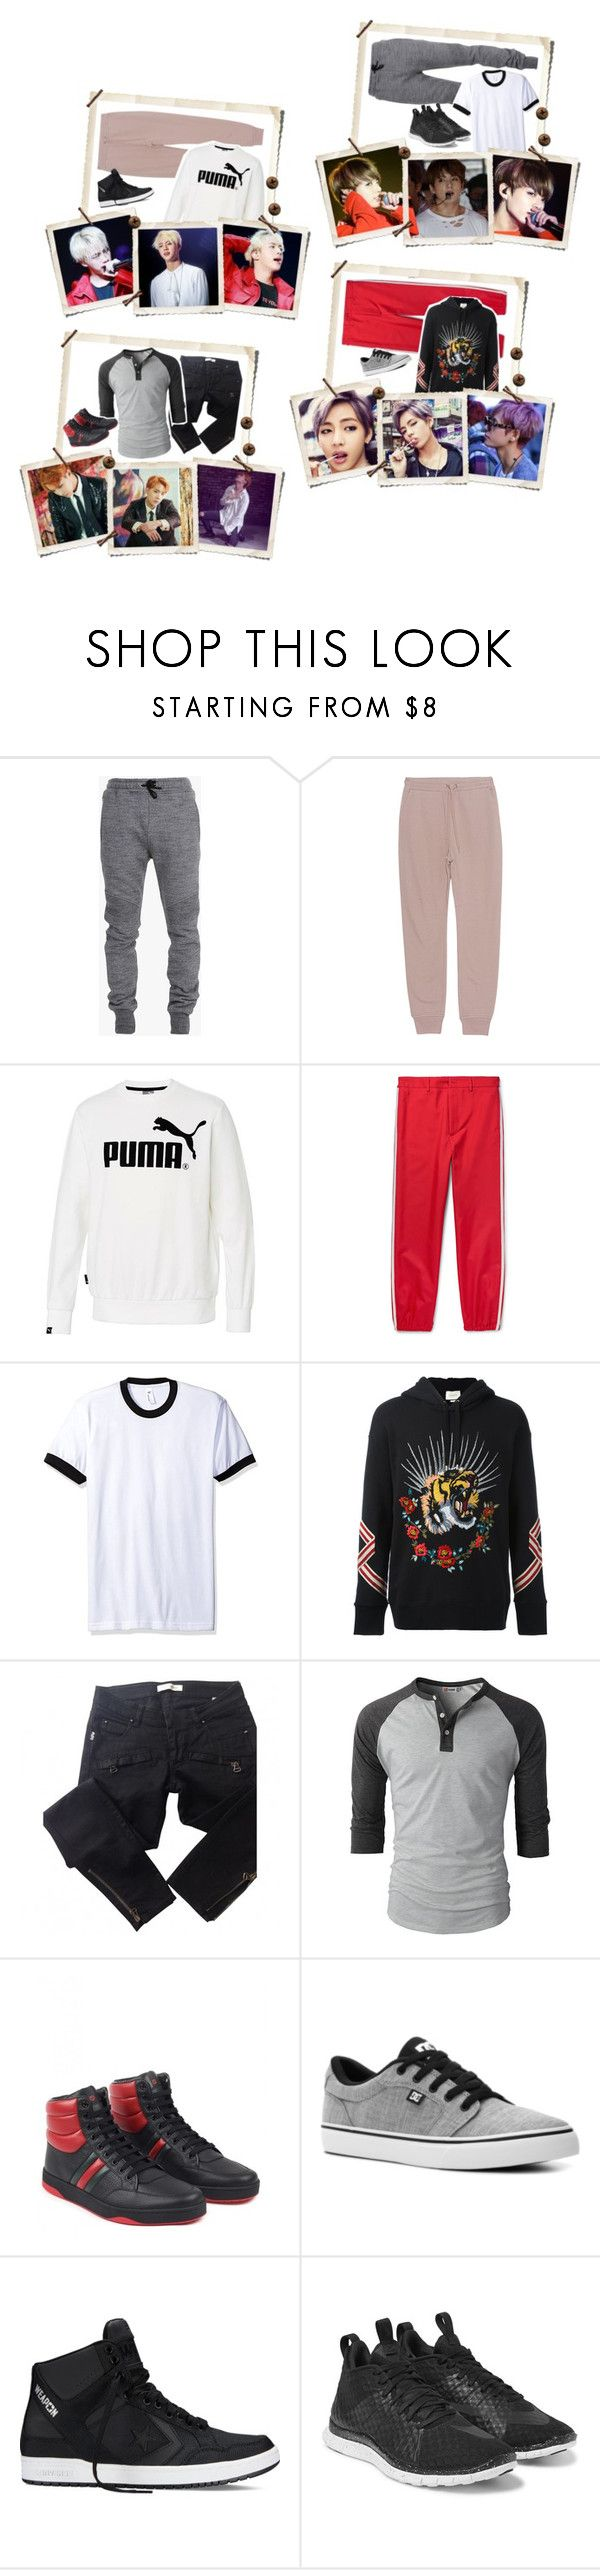 """Oorn { Seokjin & JungKook & Hoseok & Taehyung }"" by parkchim95 ❤ liked on Polyvore featuring Balmain, T By Alexander Wang, Gucci, American Apparel, DC Shoes, Converse, NIKE, men's fashion and menswear"